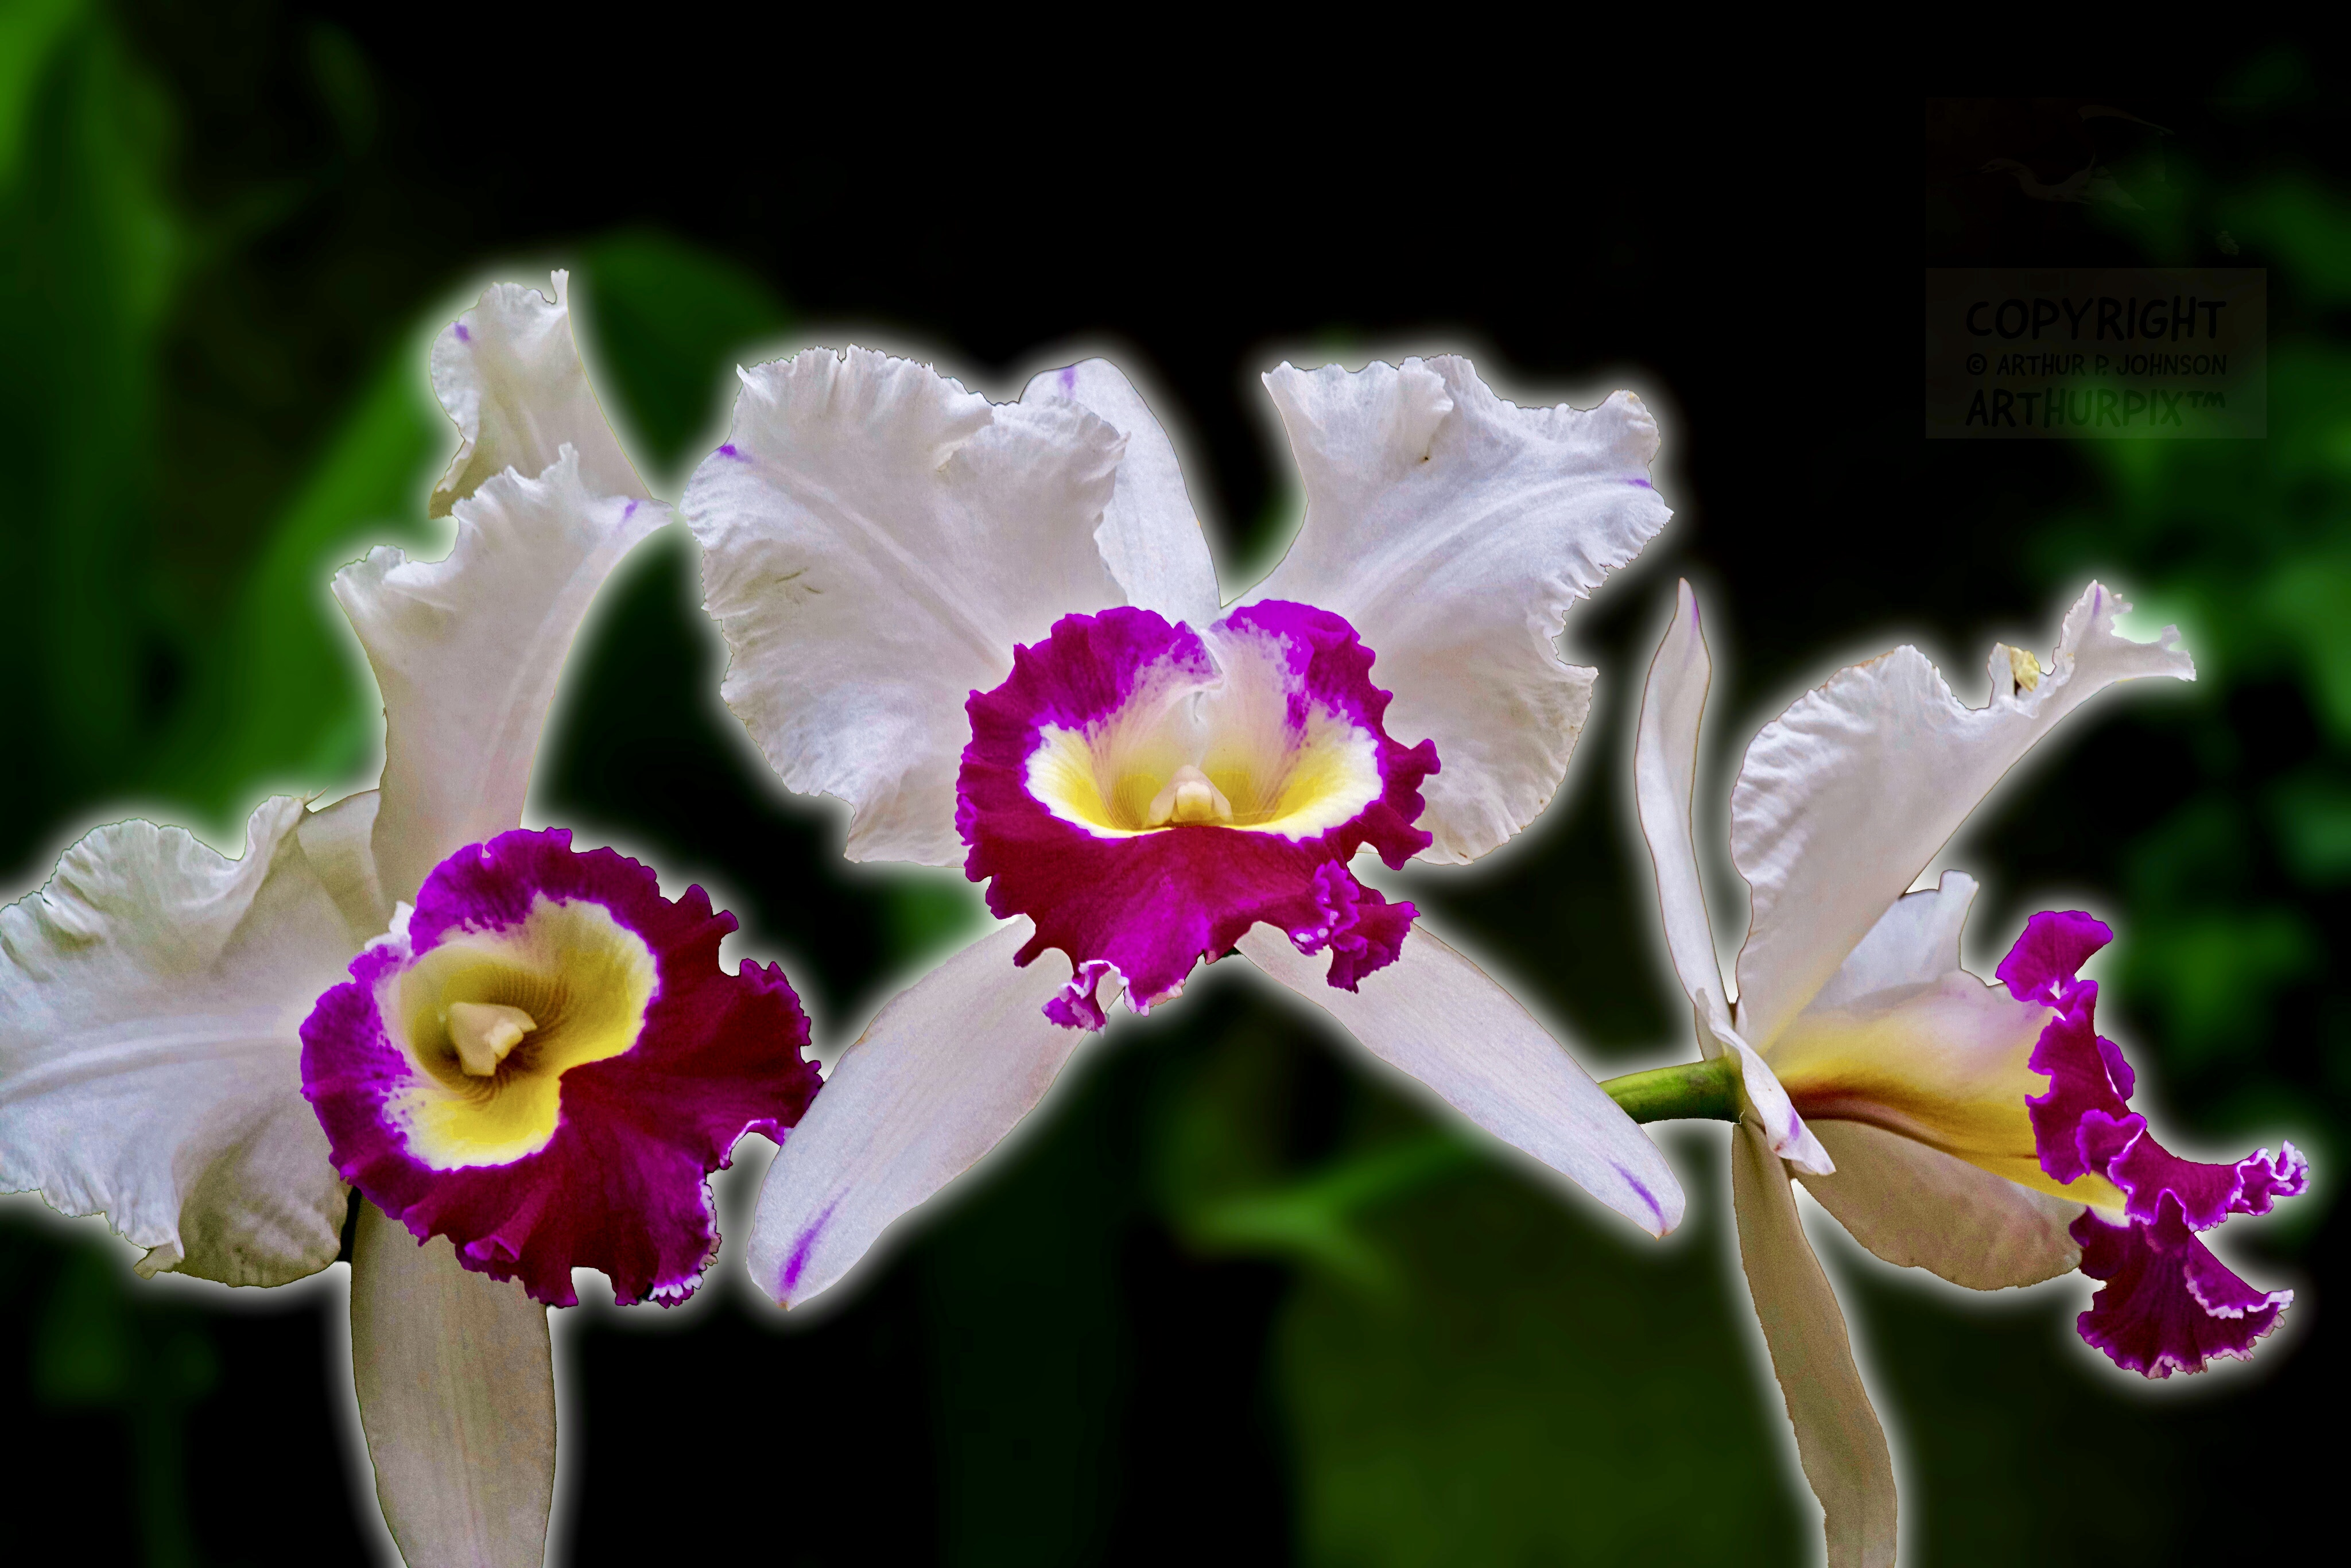 Violet and White Orchids from Longwood Gardens Orchid Extravaganza